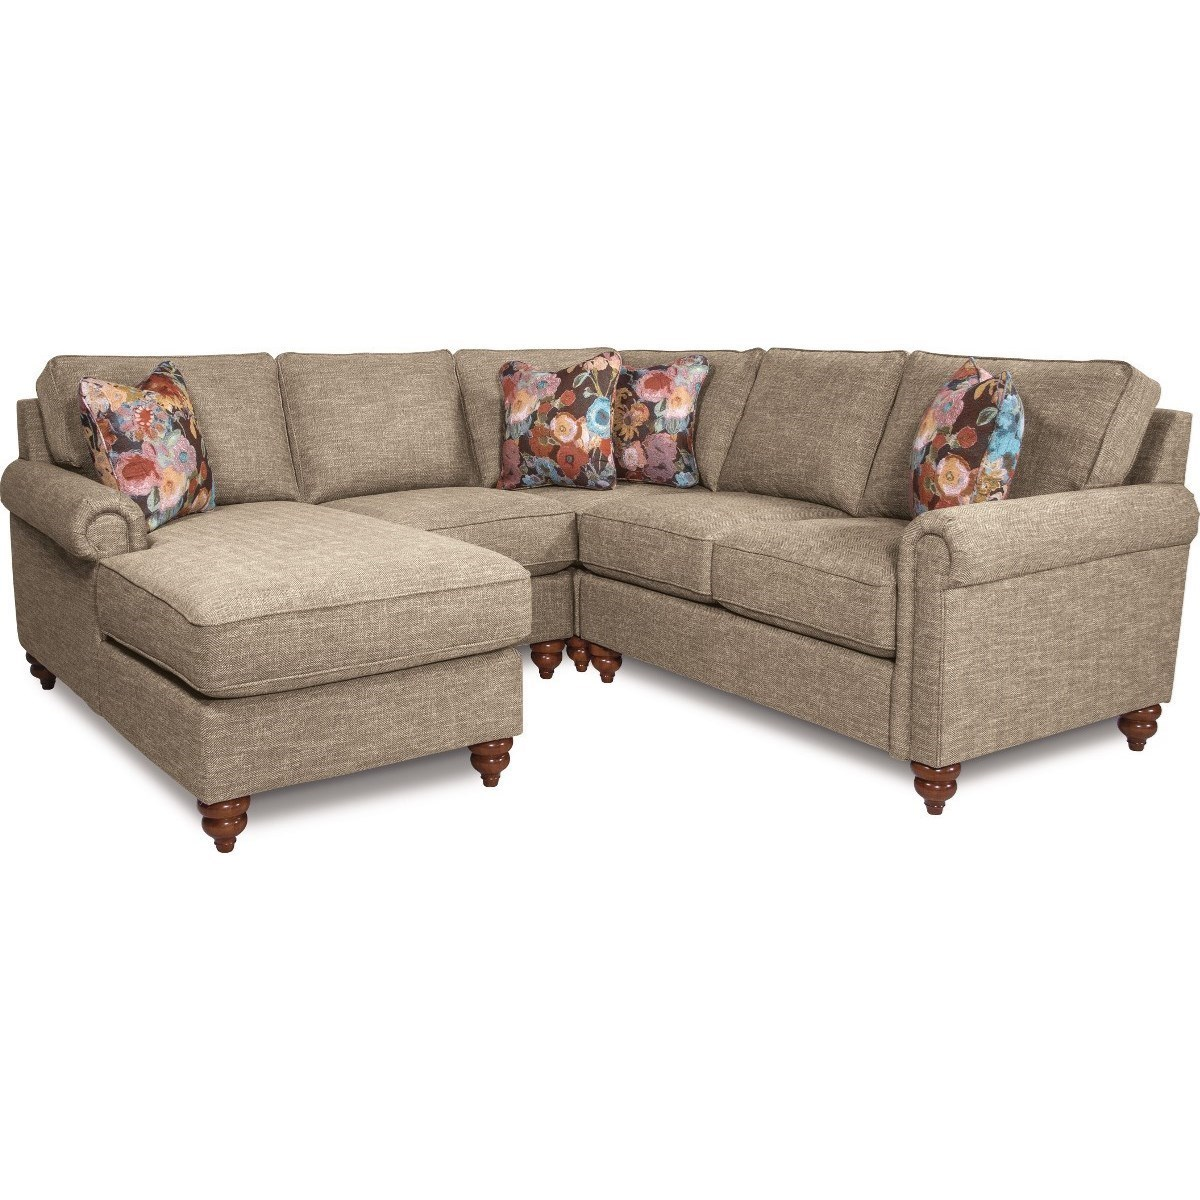 rochelle traditional four piece sectional sofa with right arm sitting chaise by la z boy